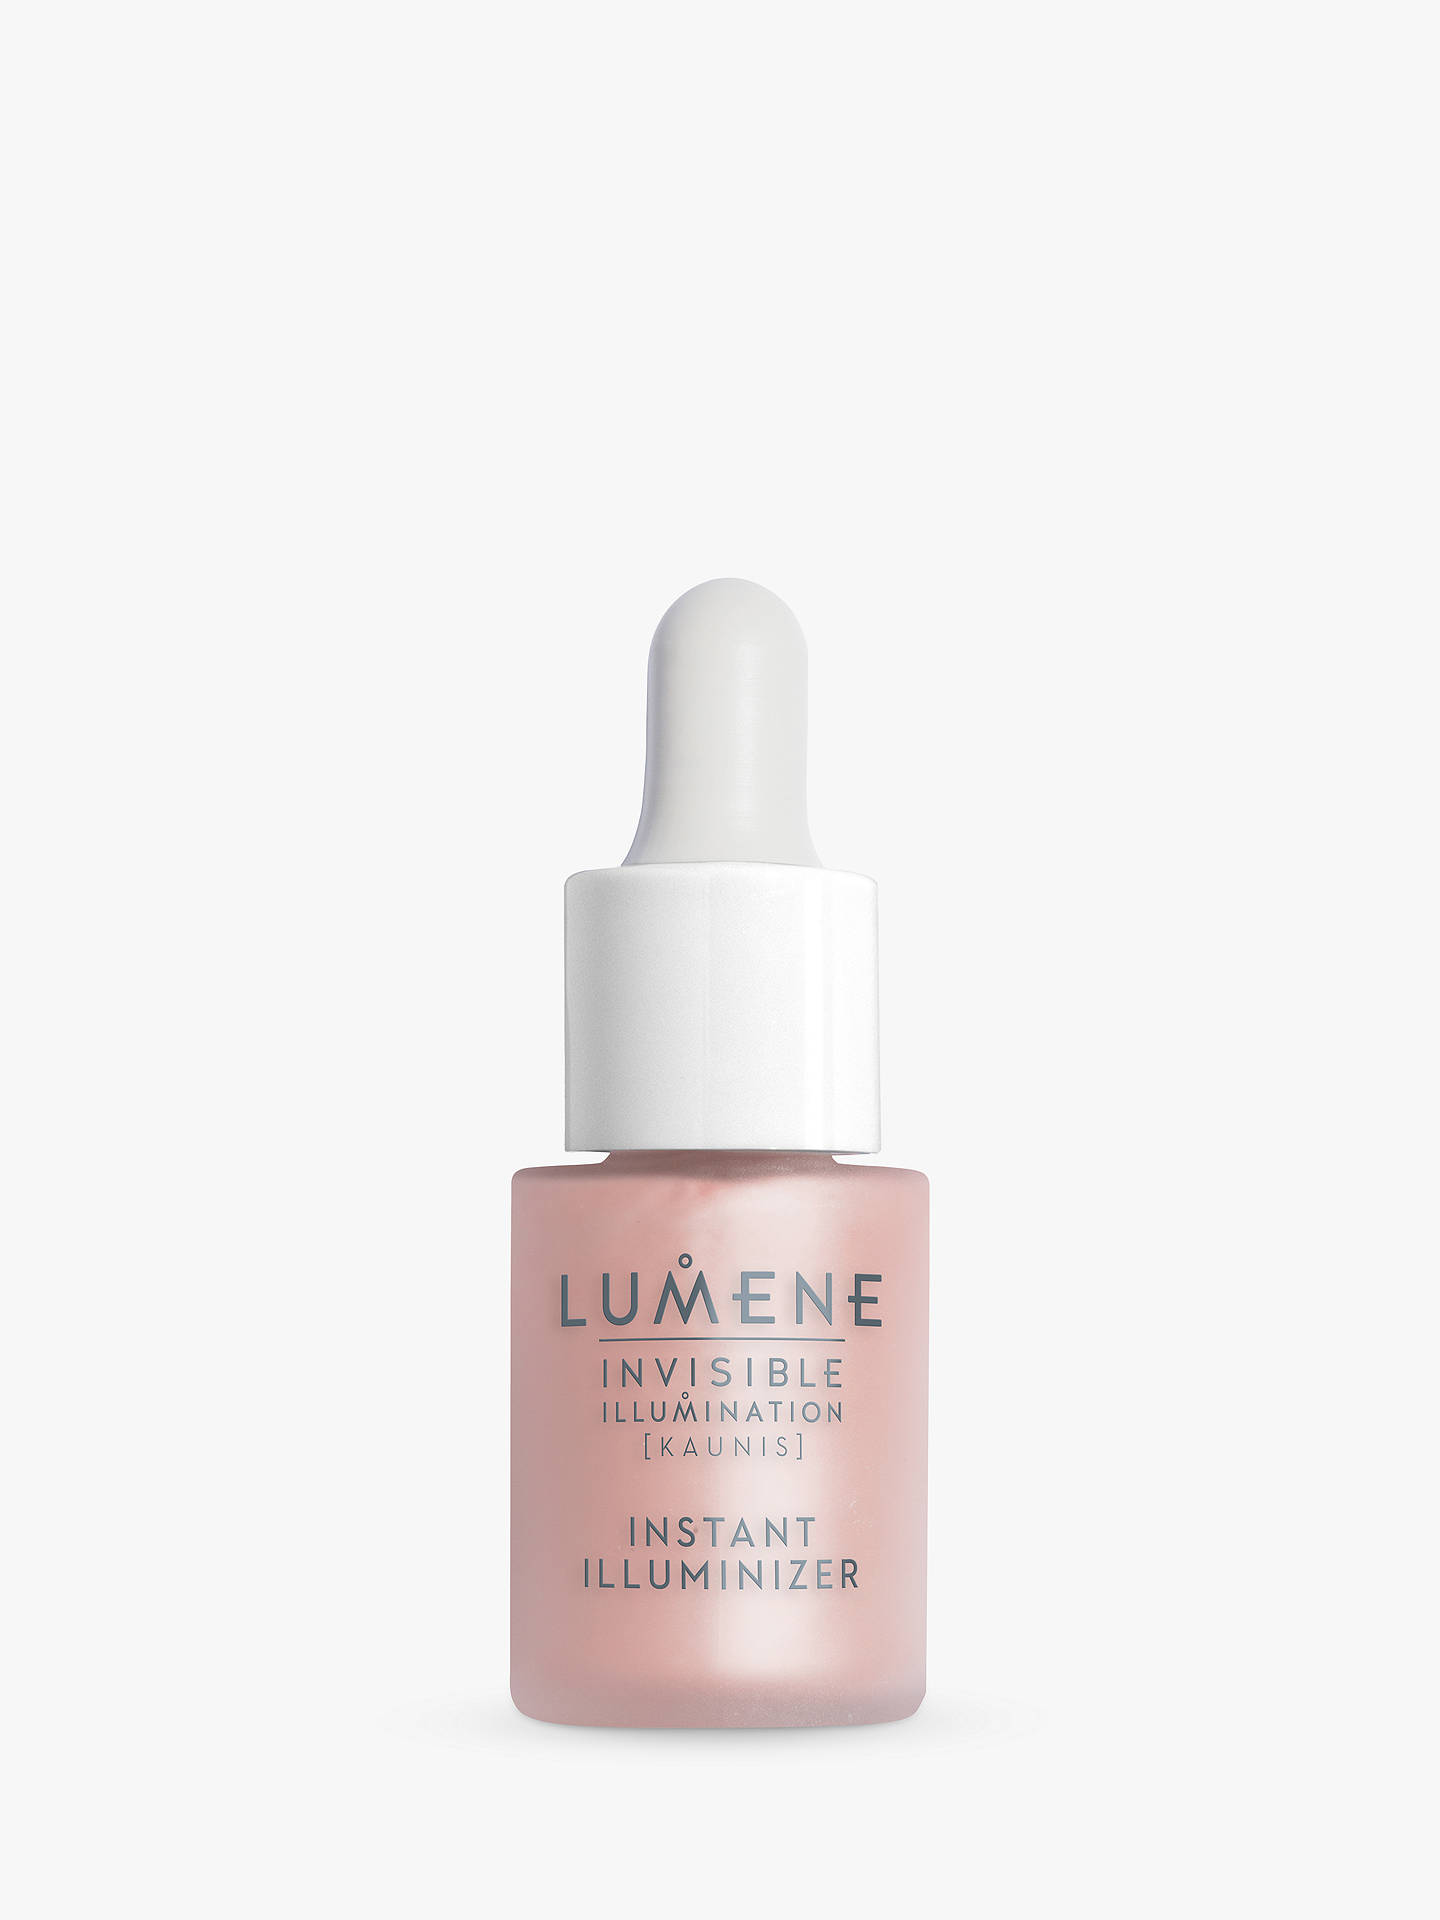 Buy Lumene Invisible Illumination Instant Illuminizer, Rosy Dawn Online at johnlewis.com